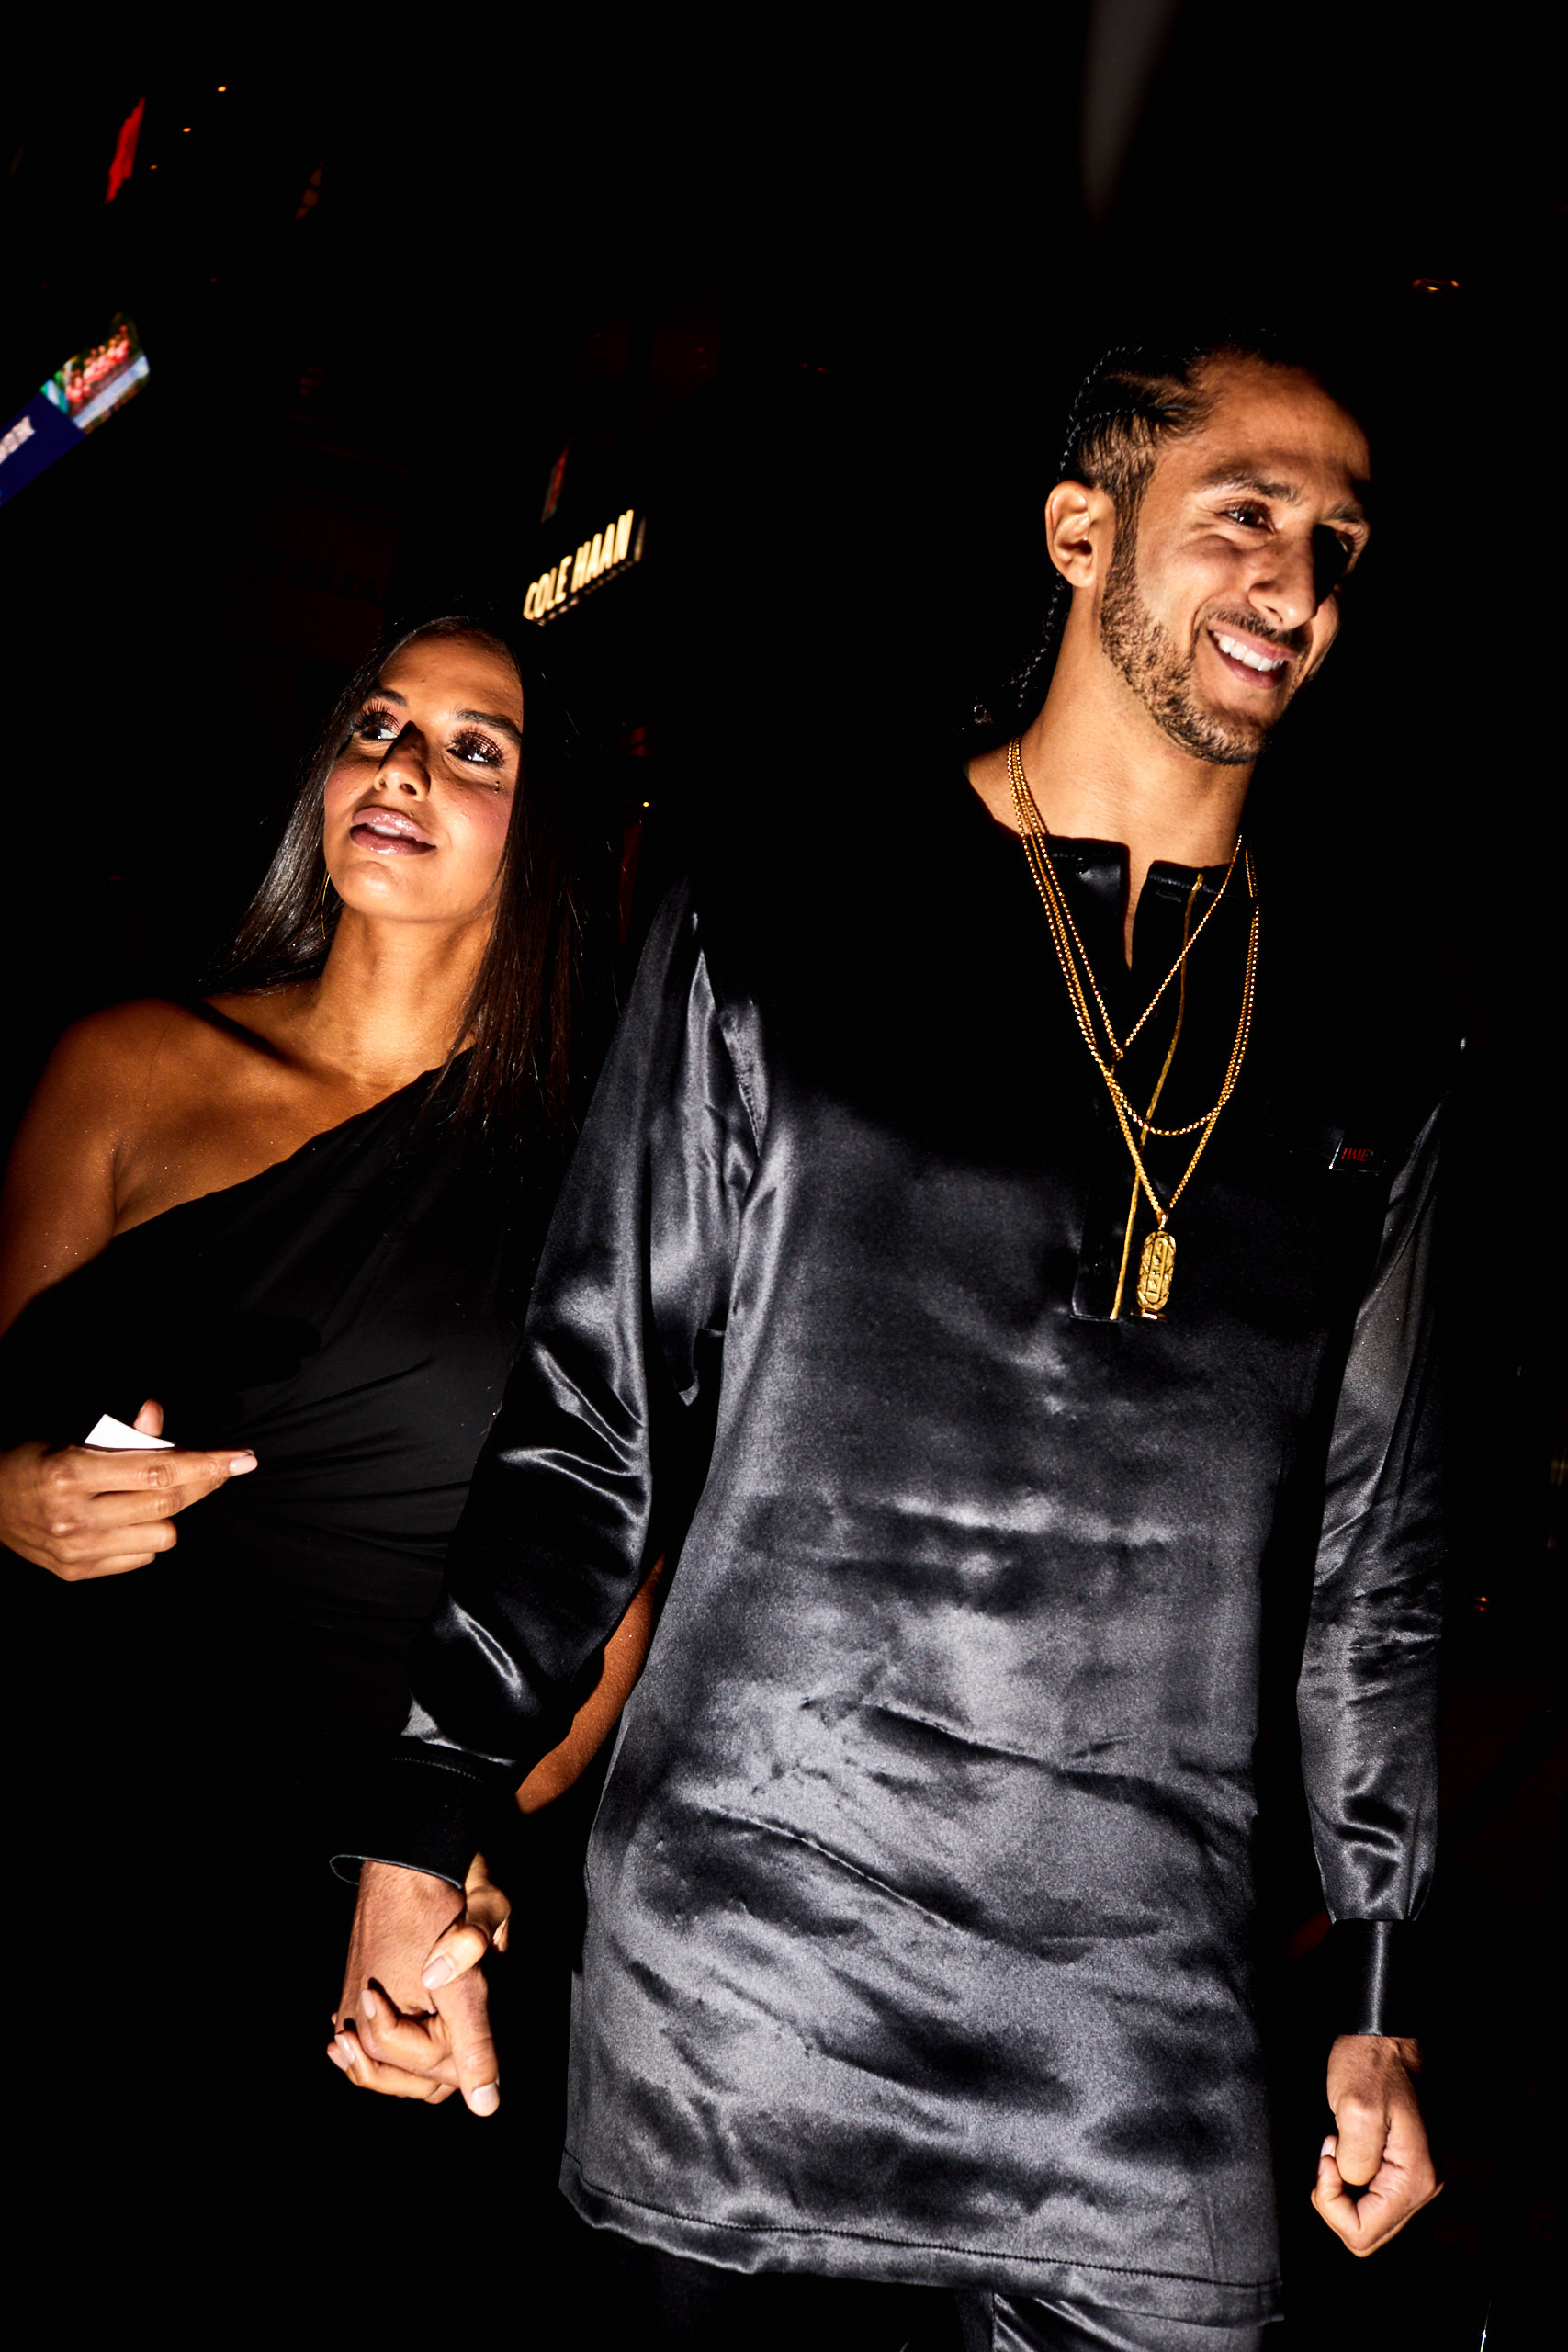 Colin Kaepernick and his wife Nessa at the Time 100 Gala at Jazz at Lincoln Center on April 25, 2017 in New York City.